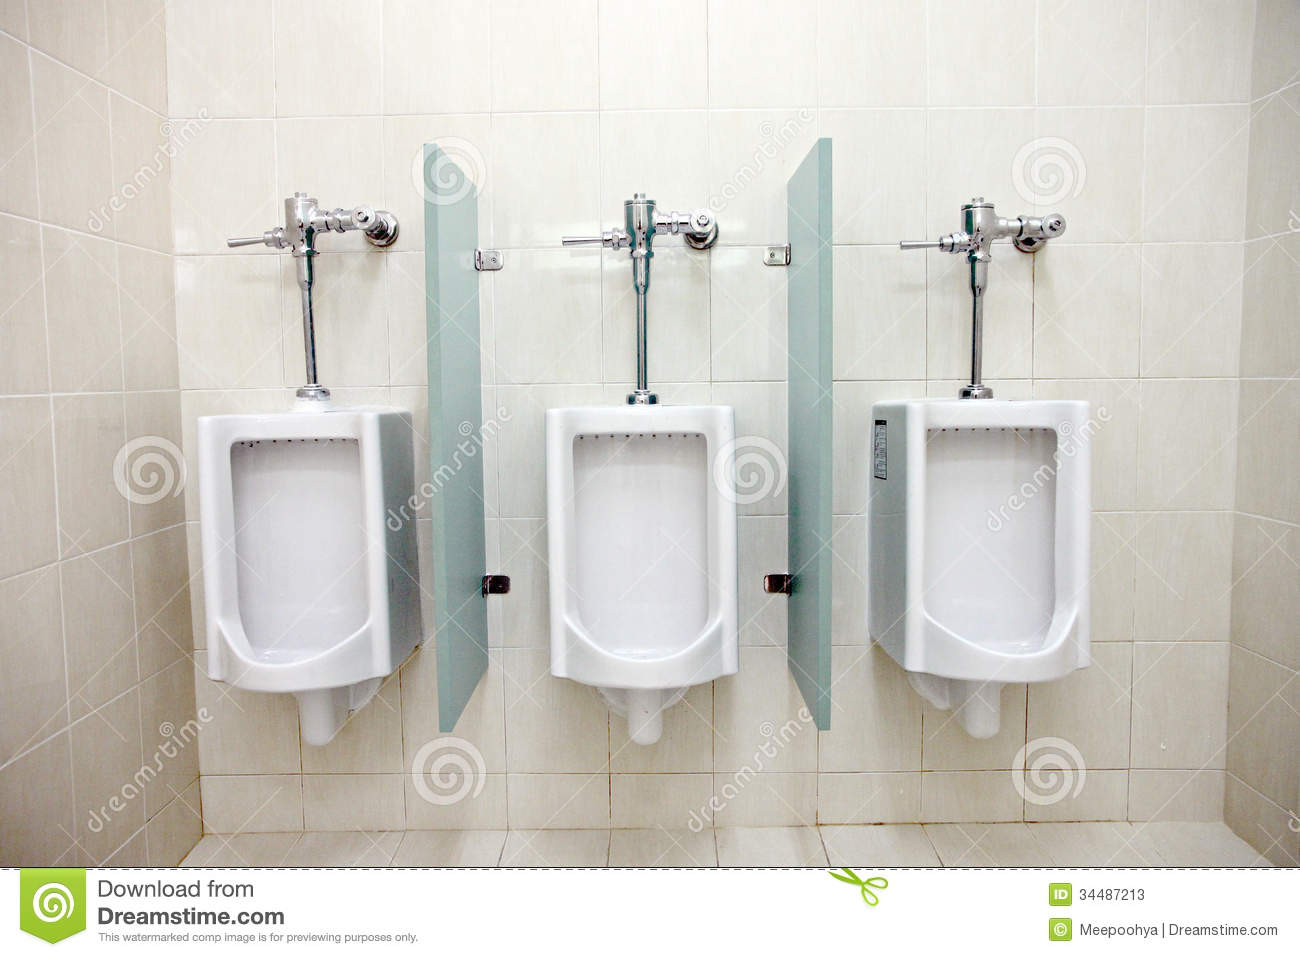 Urinals in men s bathrooms. Urinals In Men  39 s Bathrooms  Stock Photos   Image  34487213